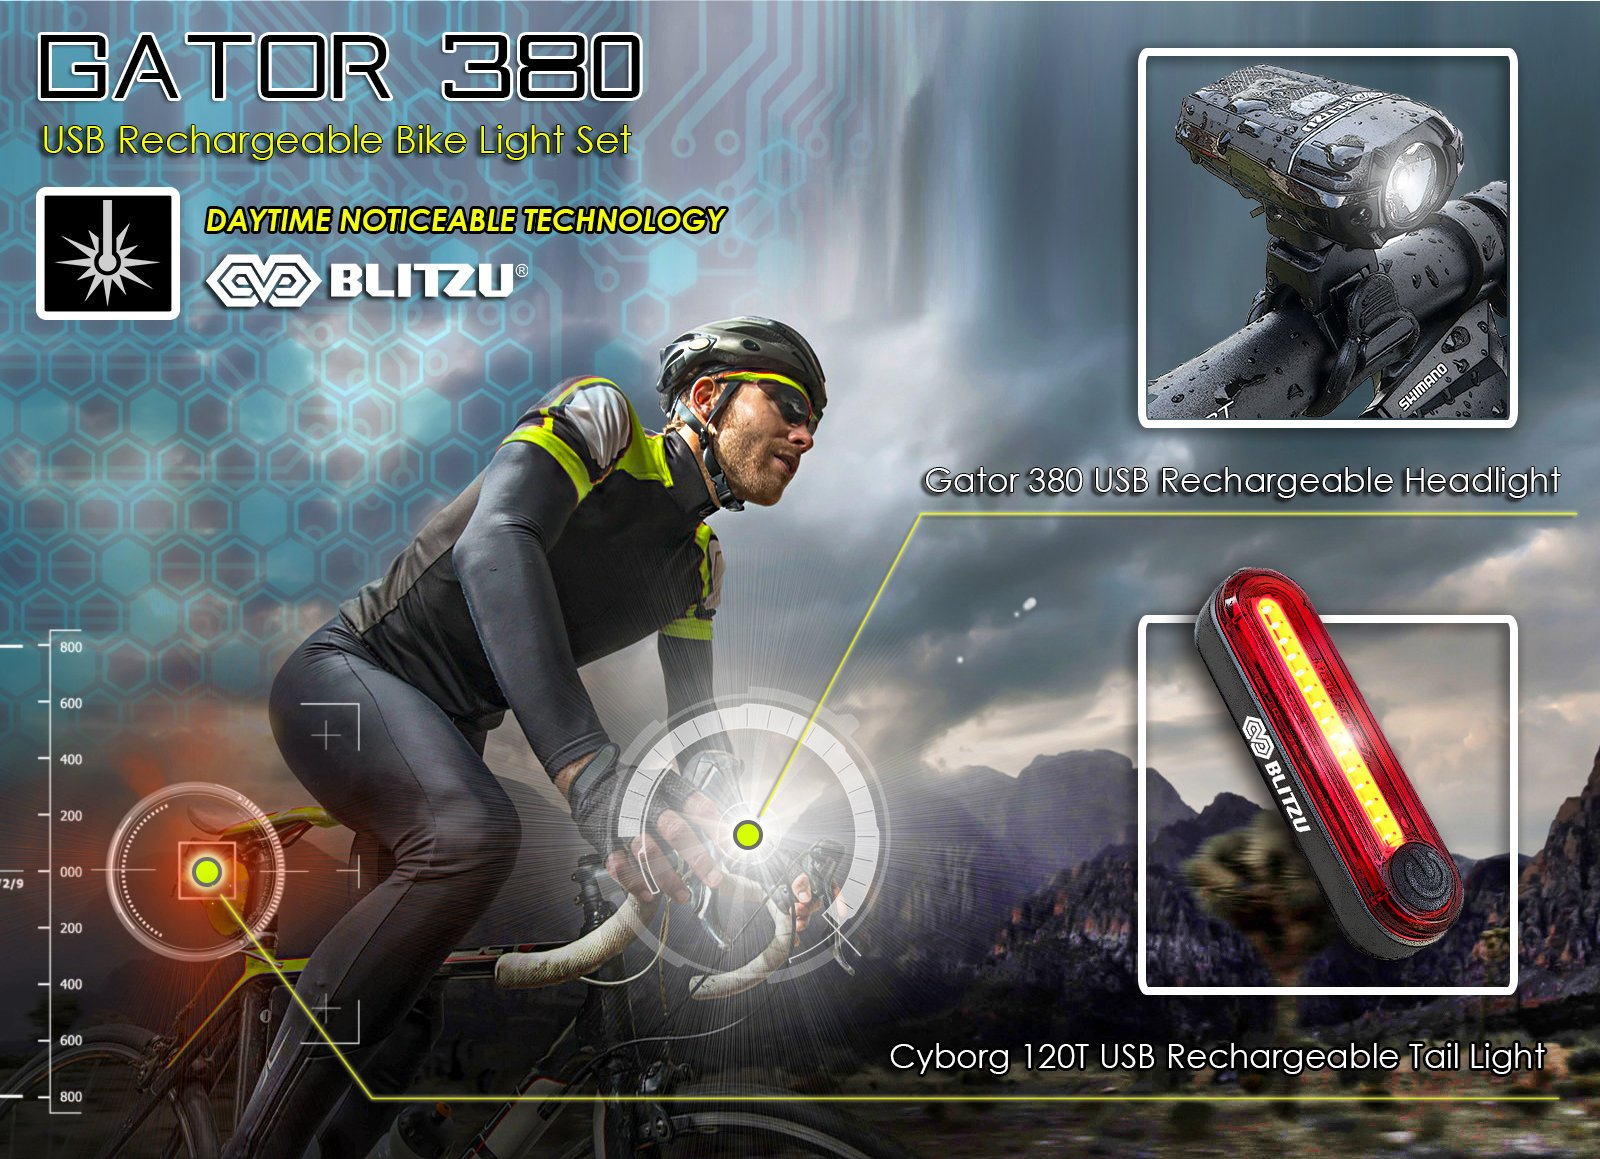 BLITZU Gator 380 USB Rechargeable Bike Light Set POWERFUL Lumens Bicycle Headlight FREE TAIL LIGHT, LED Front and Back Rear Lights Easy To Install for Kids Men Women Road Cycling Safety Flashlight by BLITZU (Image #7)